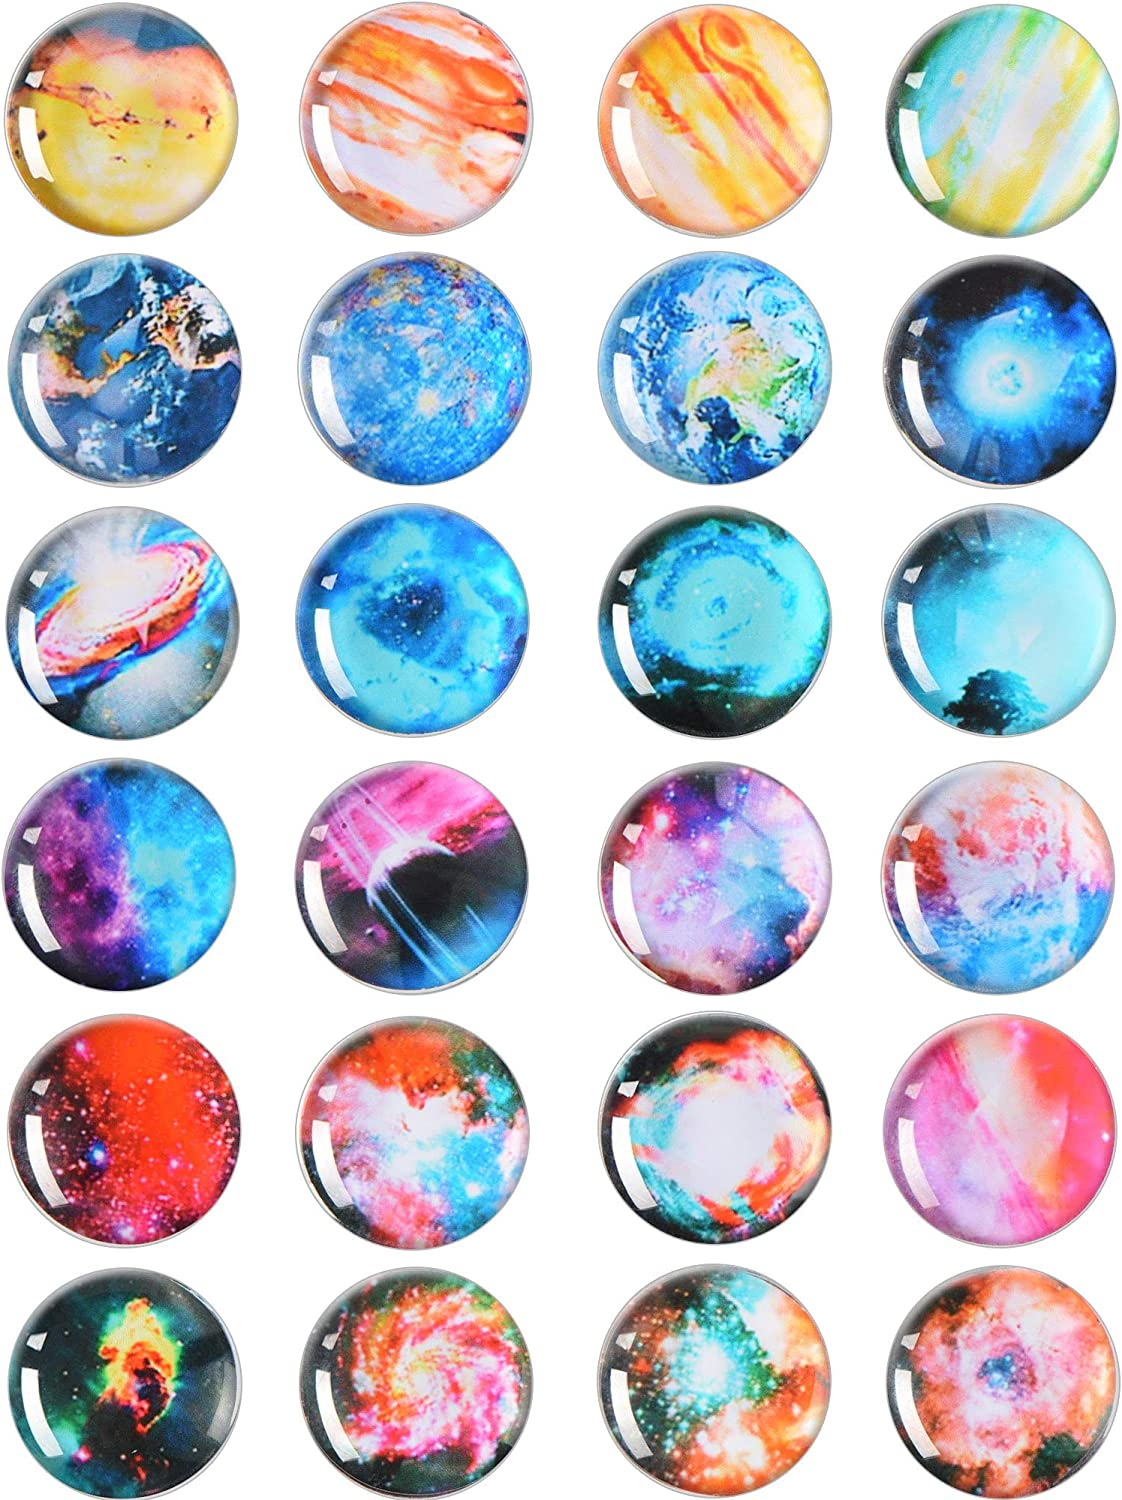 24 Pieces Planet Refrigerator Magnets Glass Starry Sky Fridge Magnets with Storage Box for Kitchen Office Cabinet Whiteboard Photo Paper Message Card Using